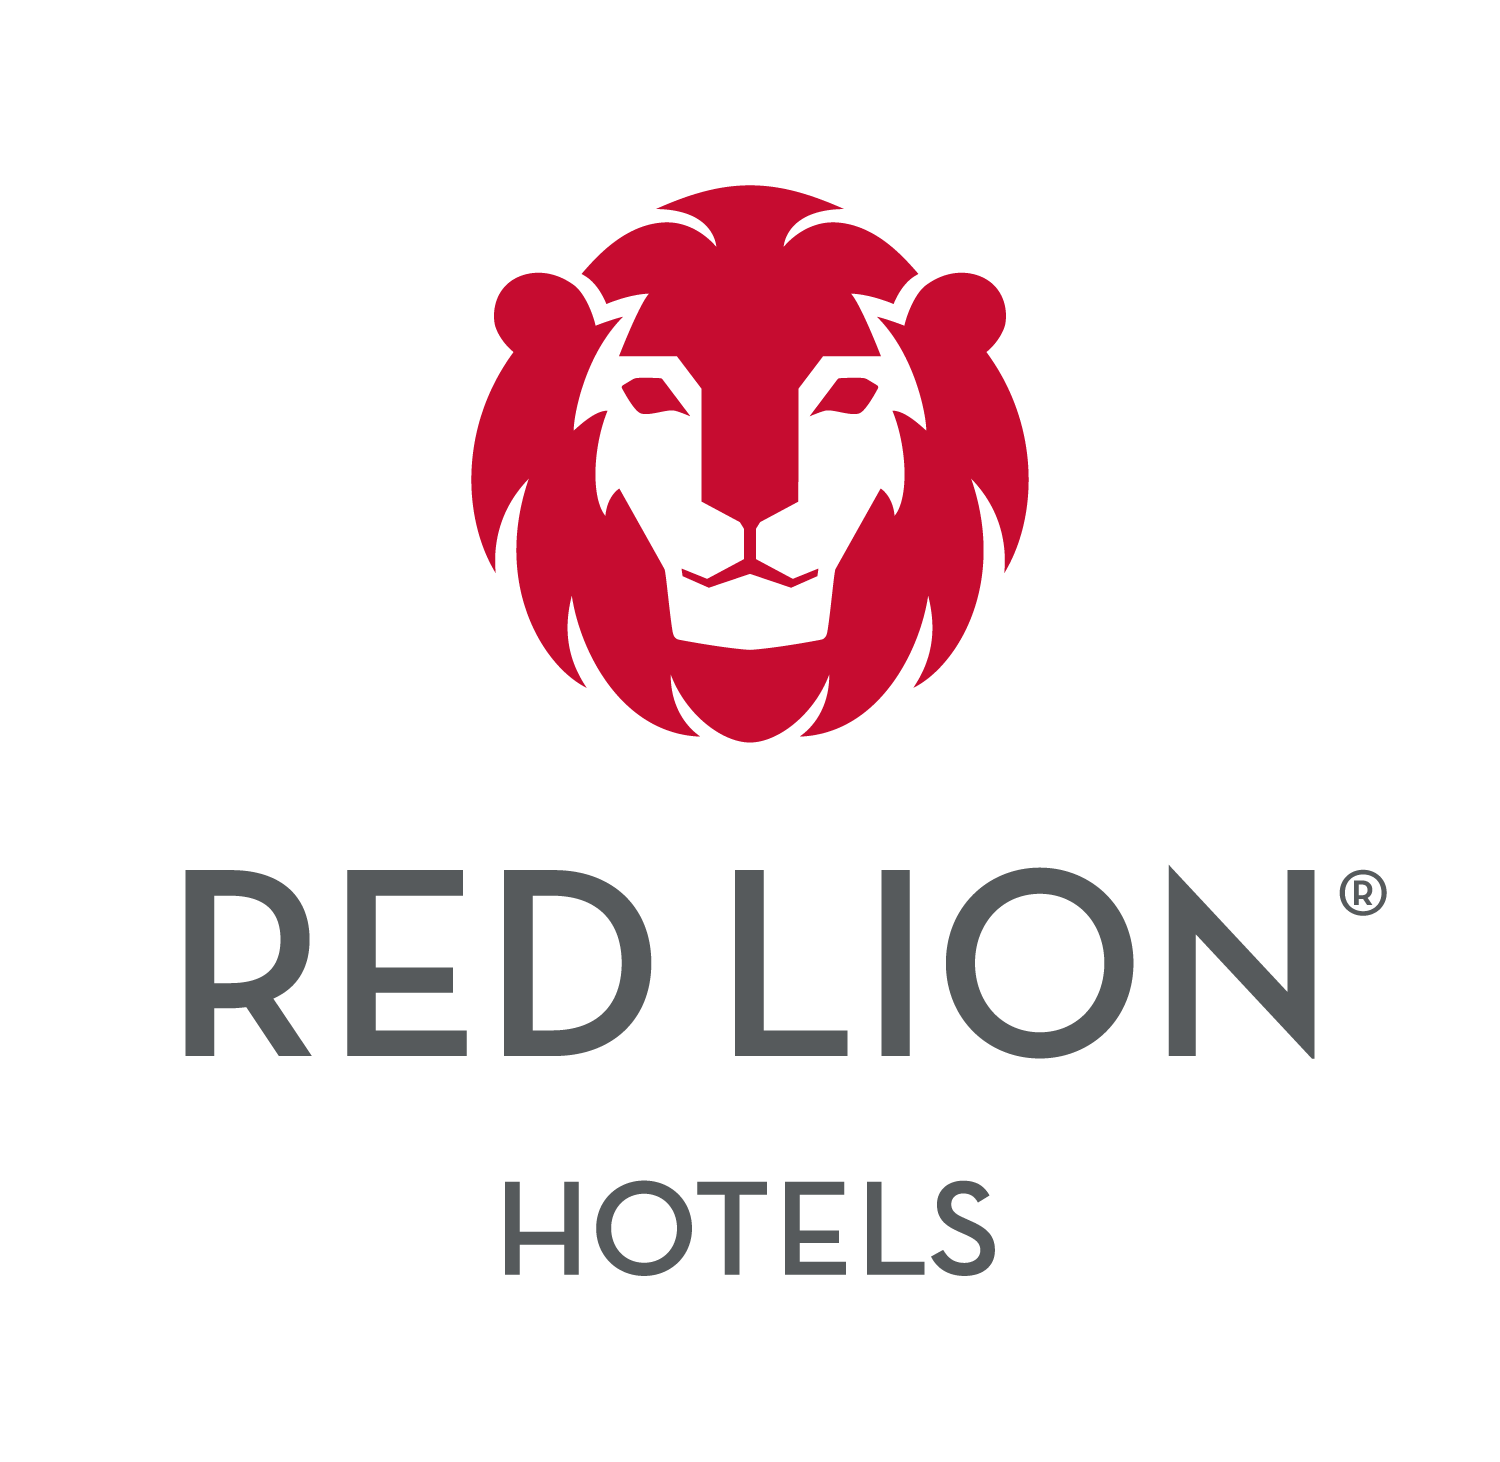 red-lion-hotel-logo.png